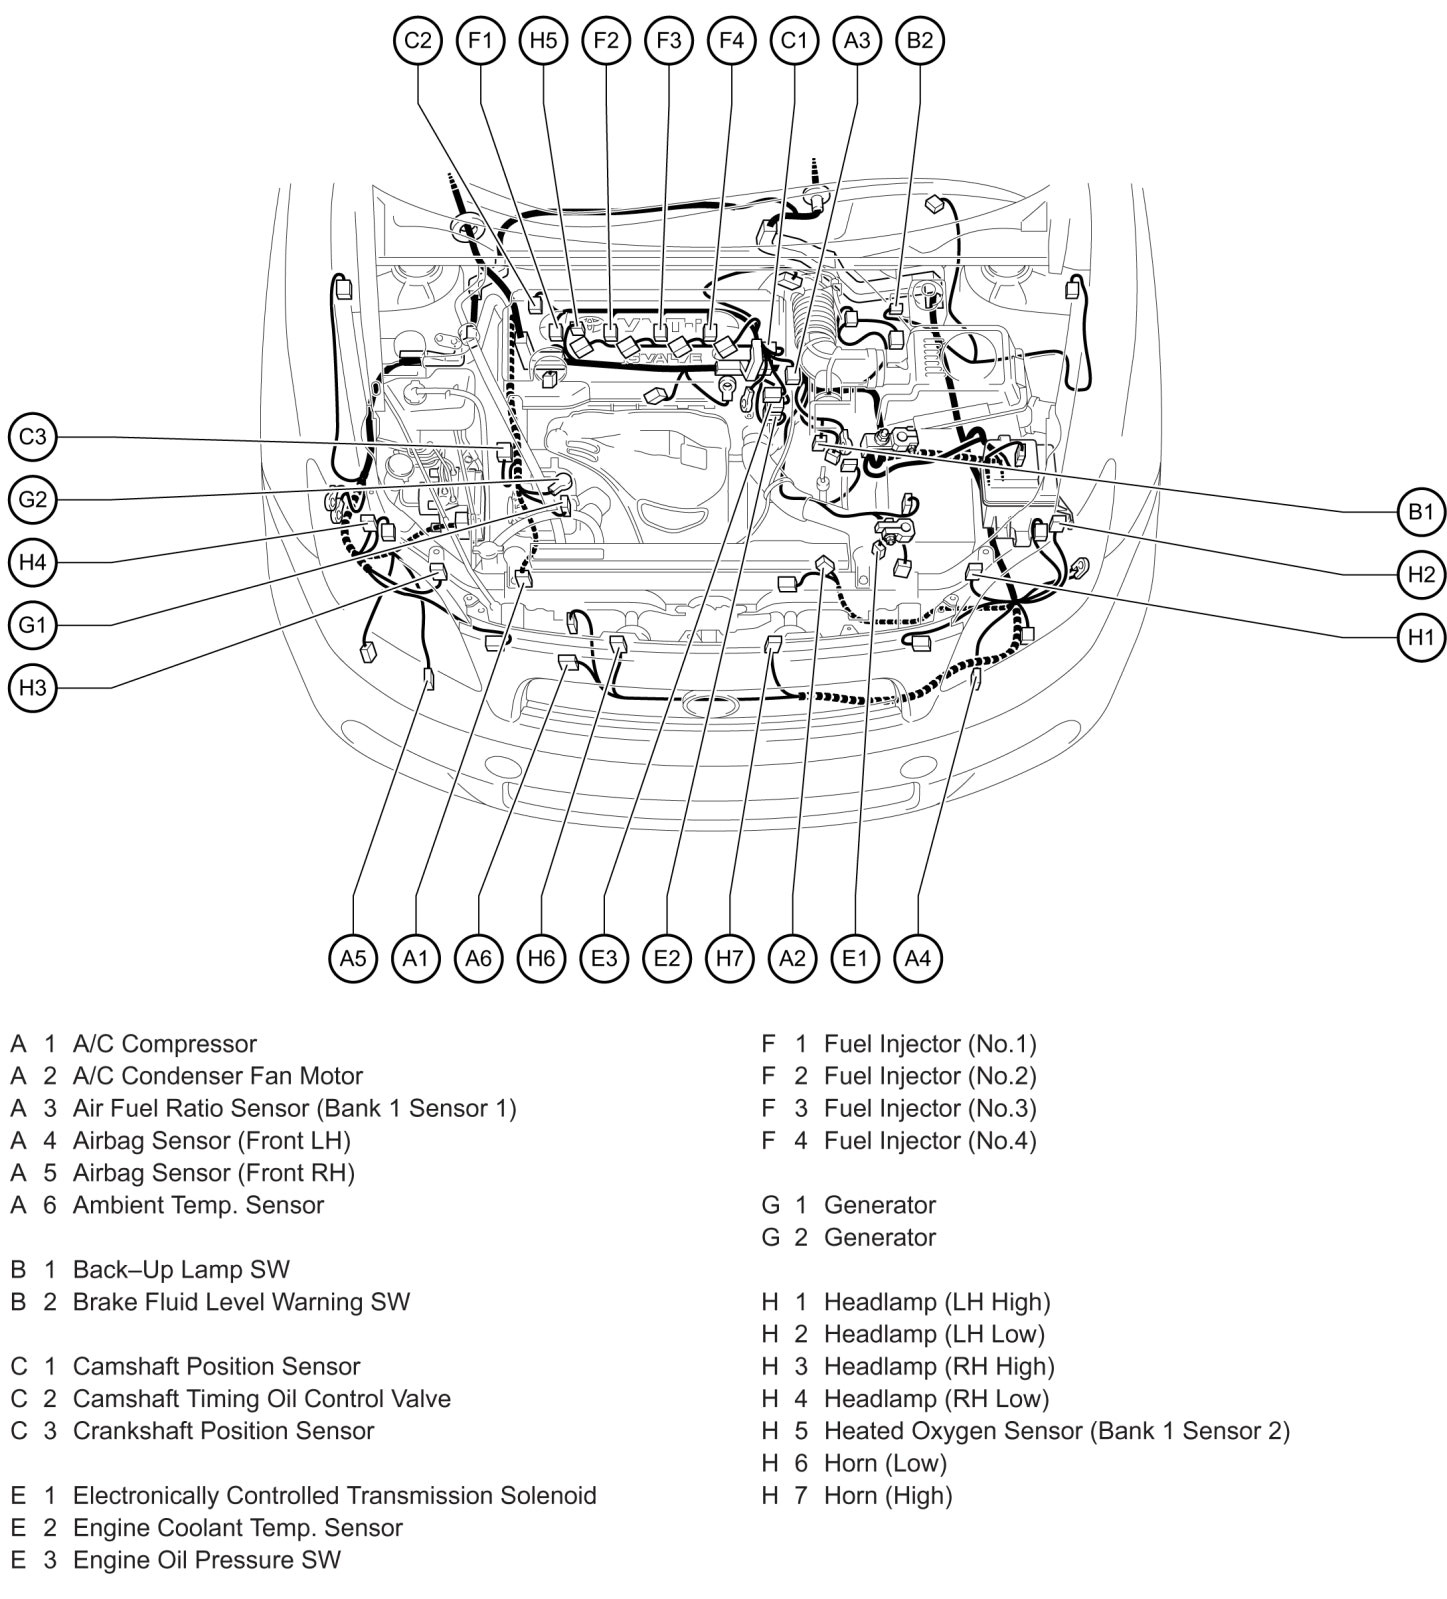 2008 expedition fuel filter location